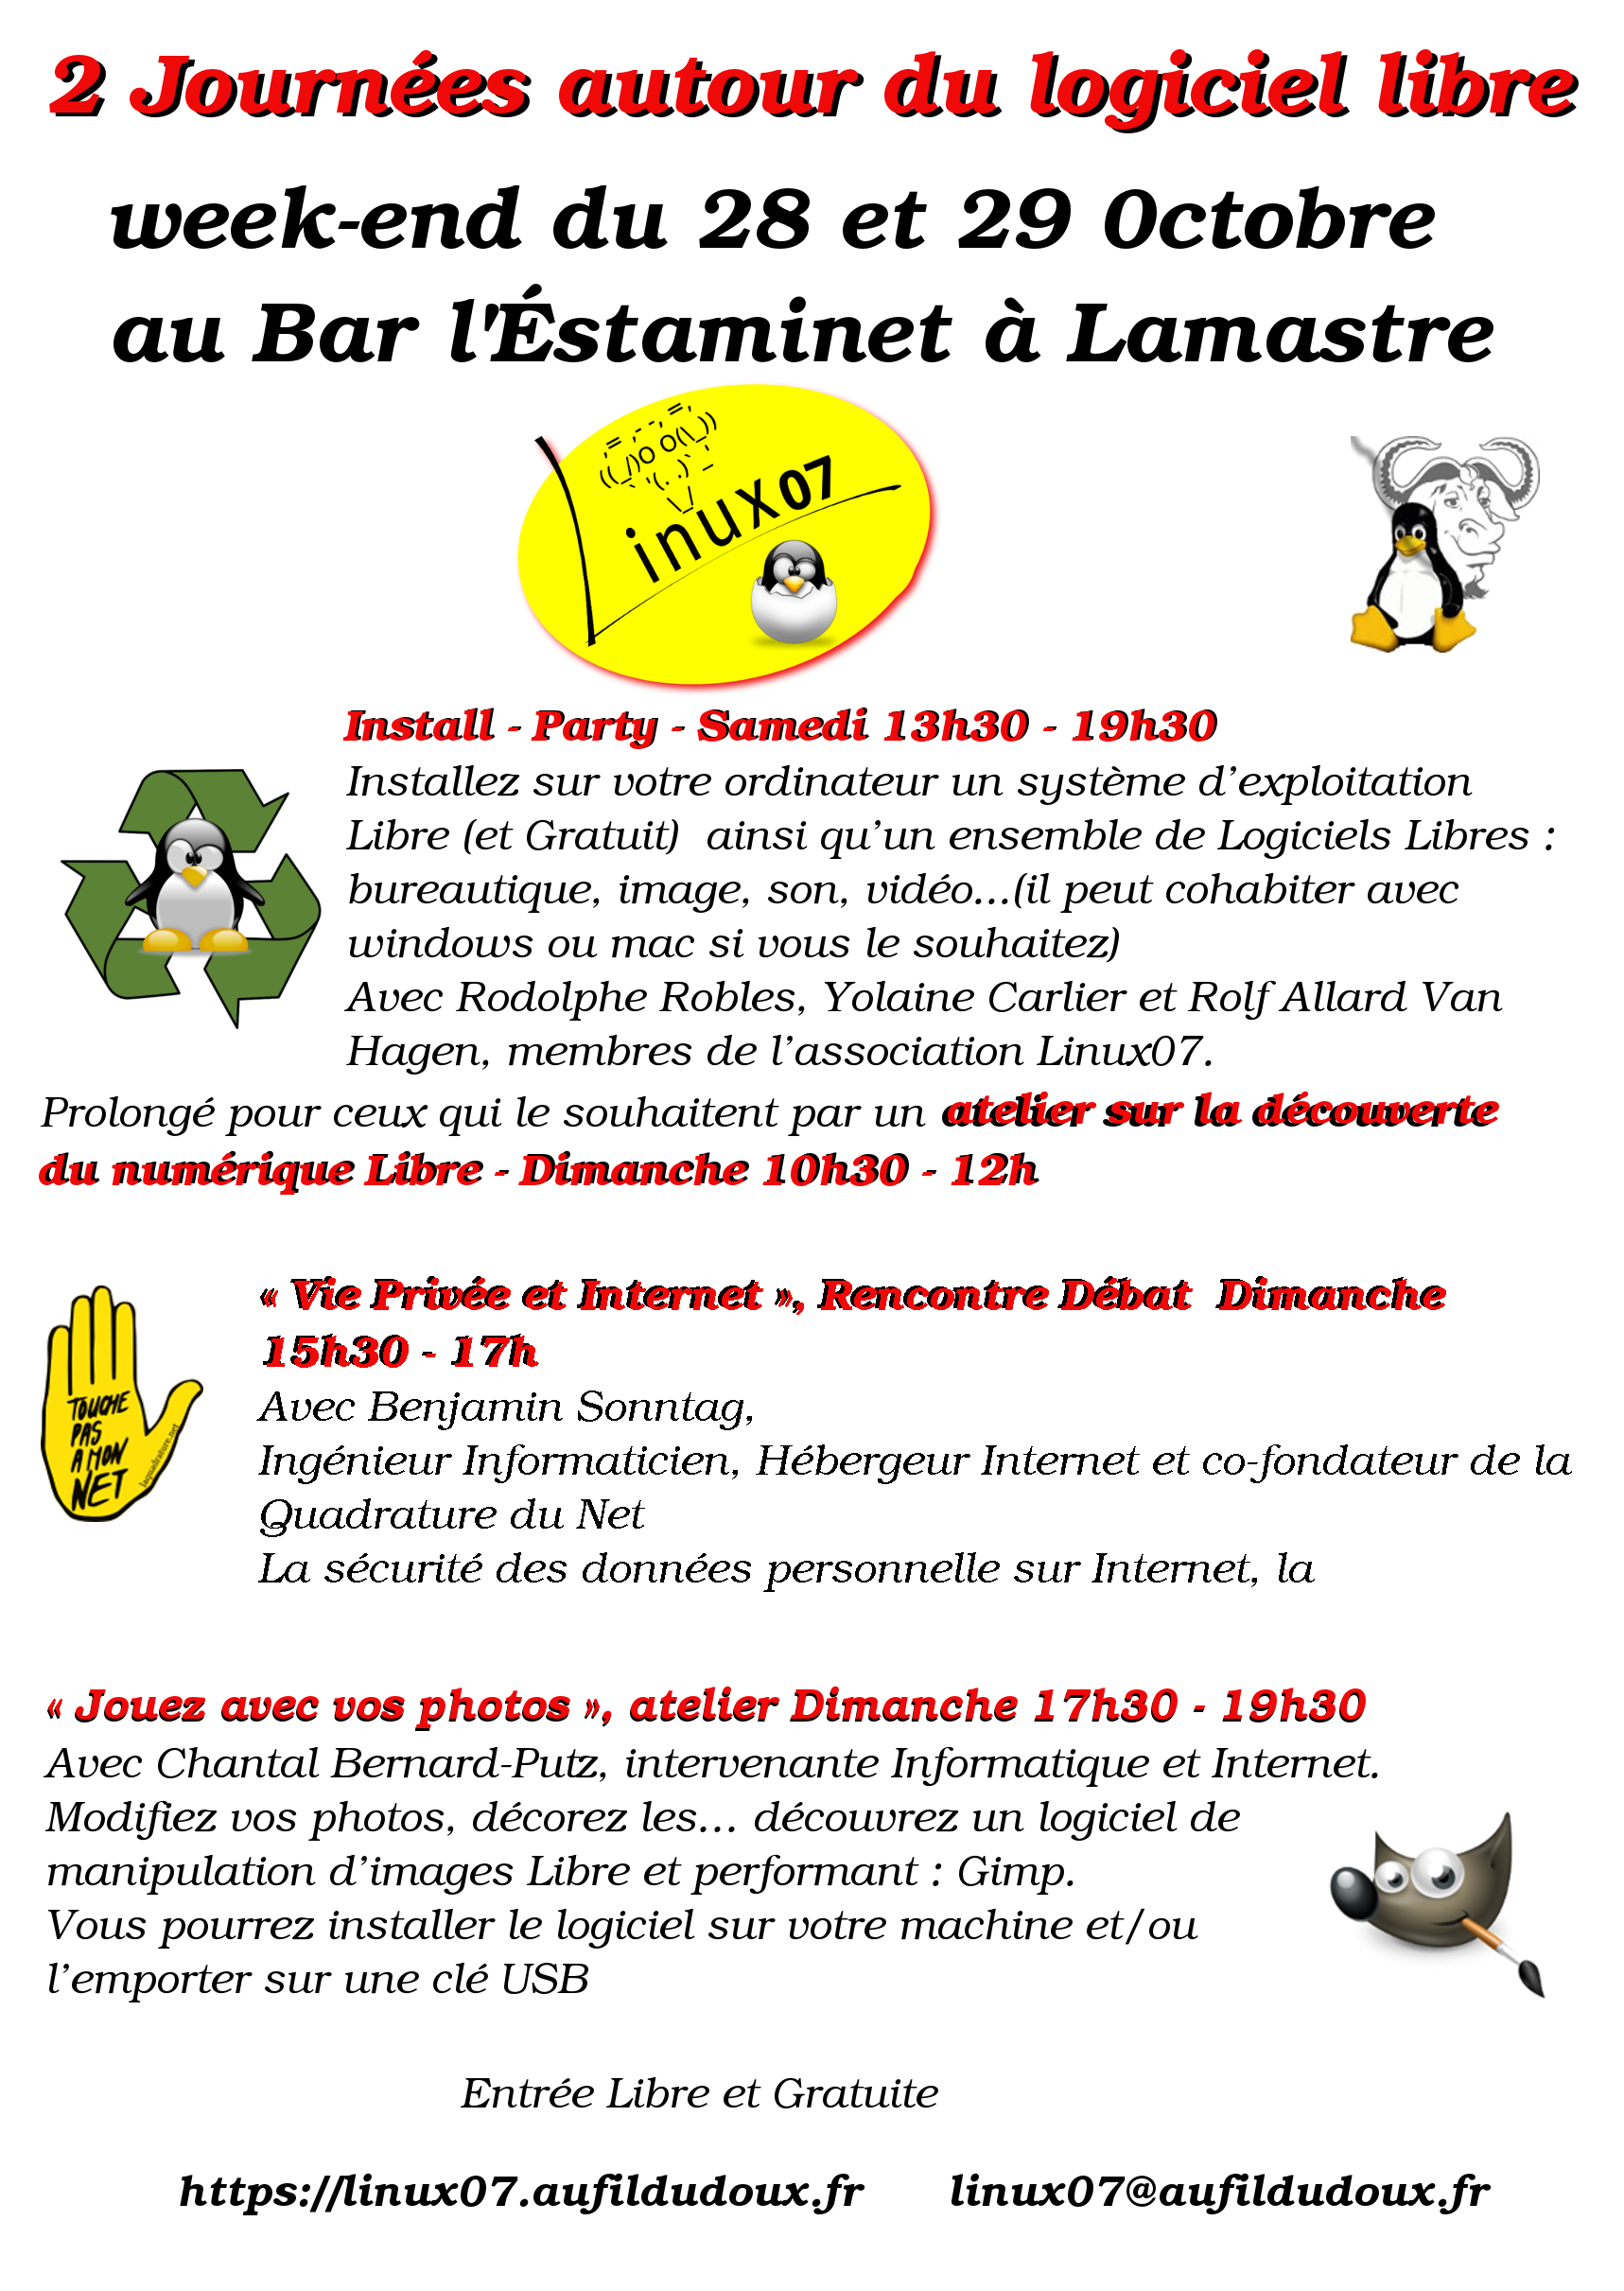 2journees-libre-étiquette-flyer-3